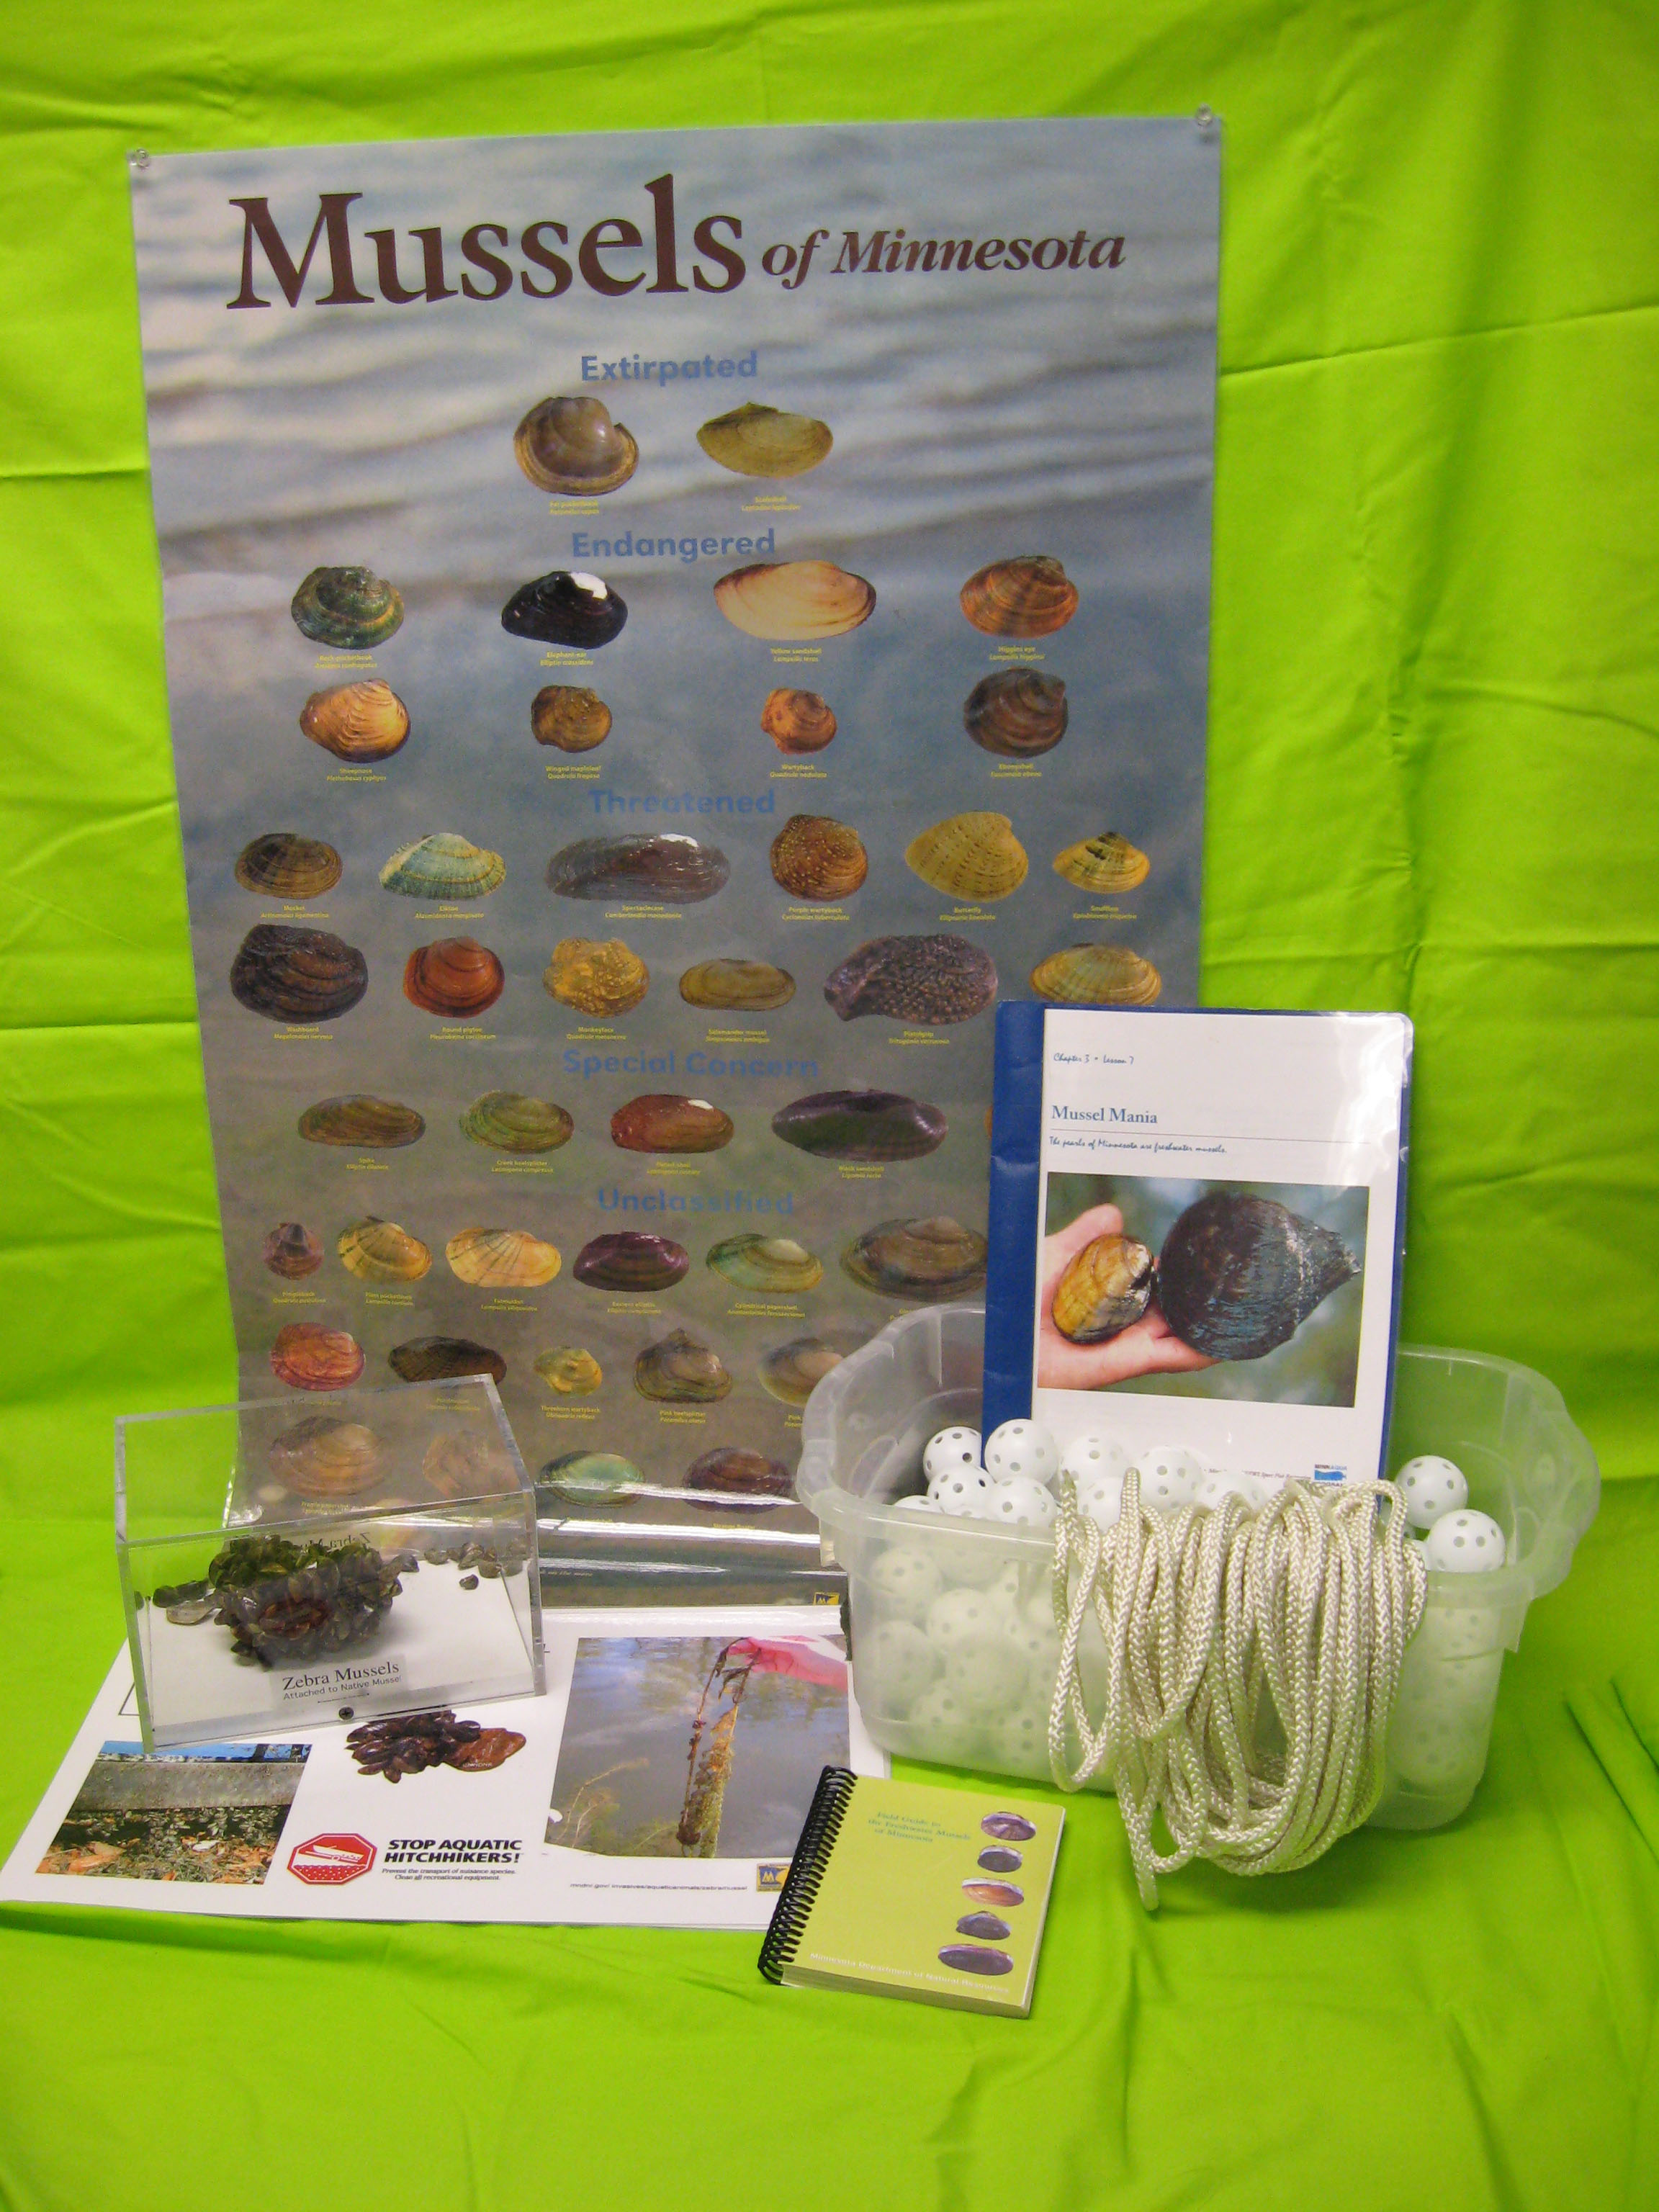 Materials for Mussel Mania